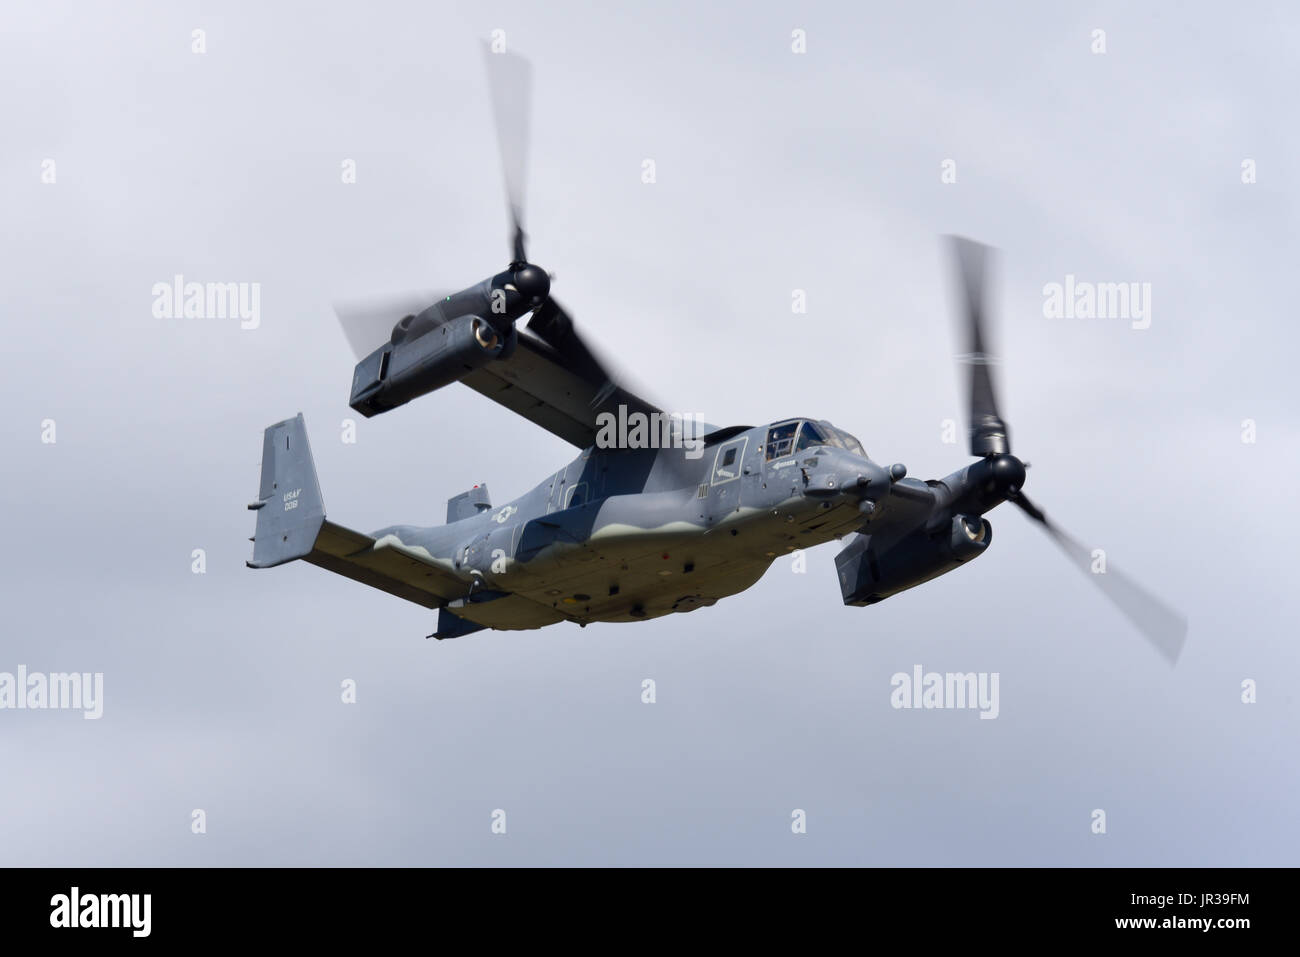 bell-boeing-v-22a-osprey-11-0061-of-the-us-air-force-flying-at-an-JR39FM.jpg